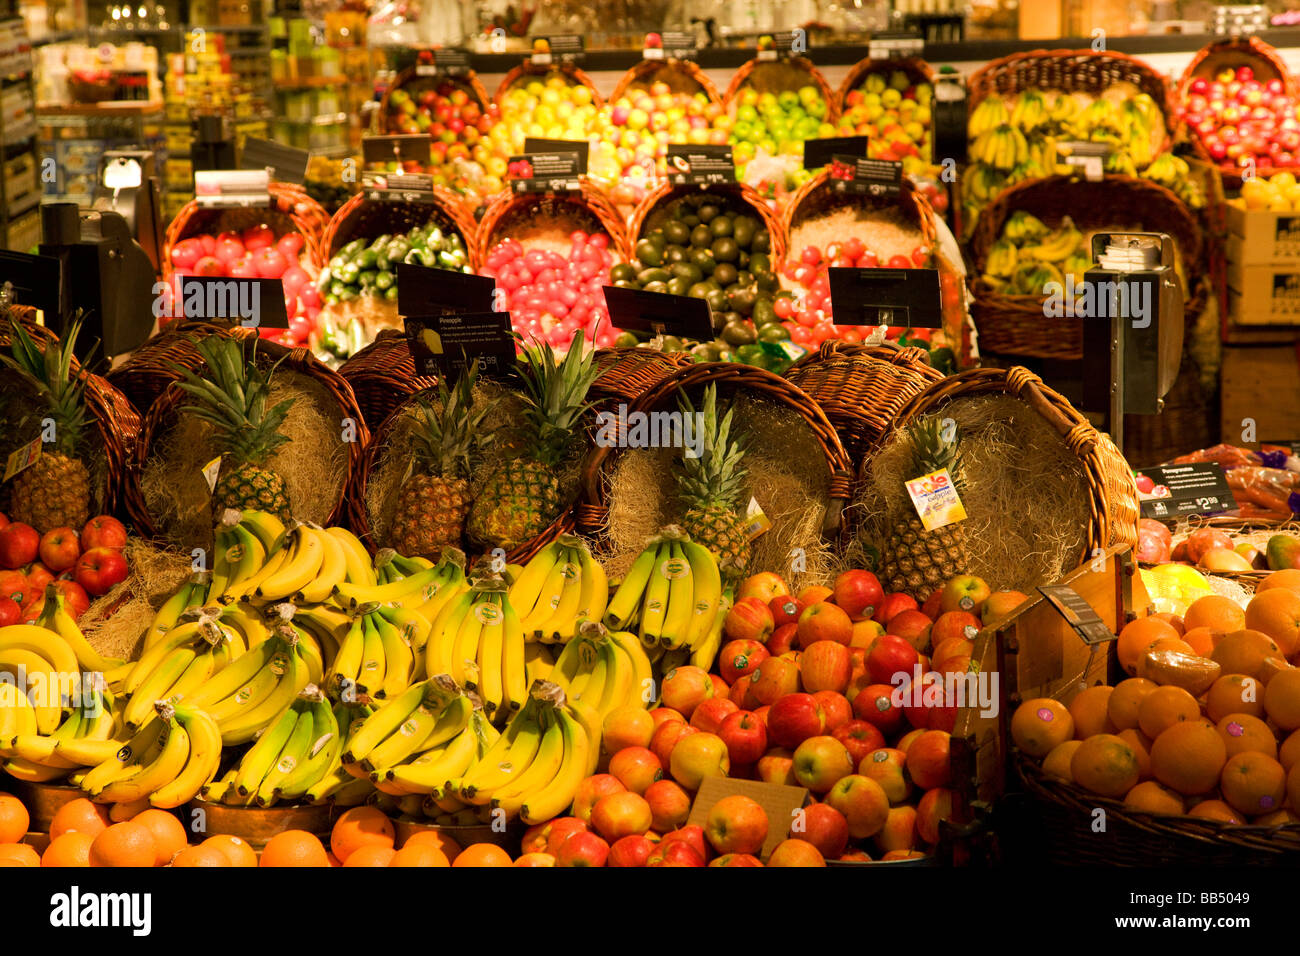 The grocery store Urban Fare in the town that will host the 2010 Winter Olympics Vancouver British Columbia Canada - Stock Image